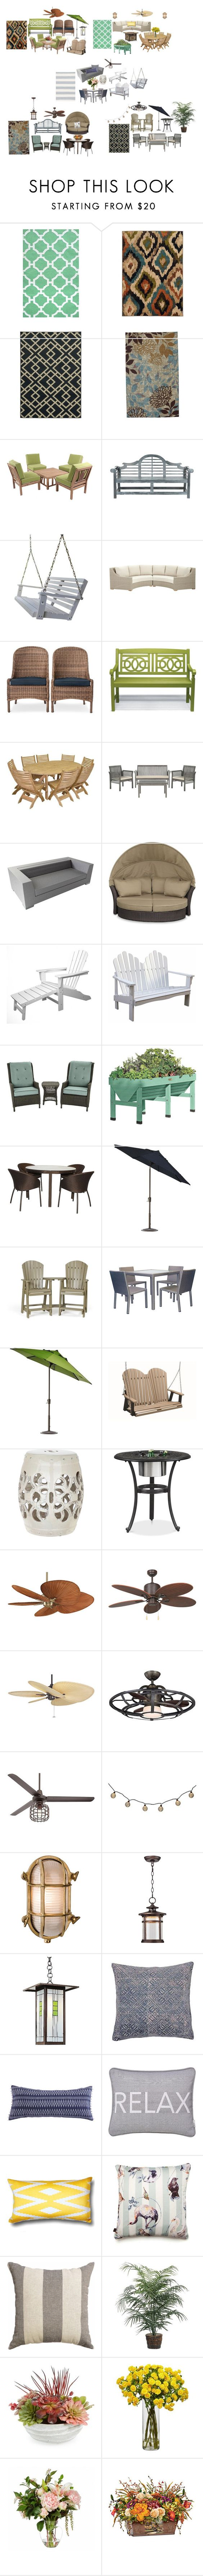 Threshold home decor shop for threshold home decor on polyvore - A Home Decor Collage From May 2016 Featuring Universal Lighting And Decor Indoor Outdoor Area Rugs And Outdoor Rugs Browse And Shop Related Looks